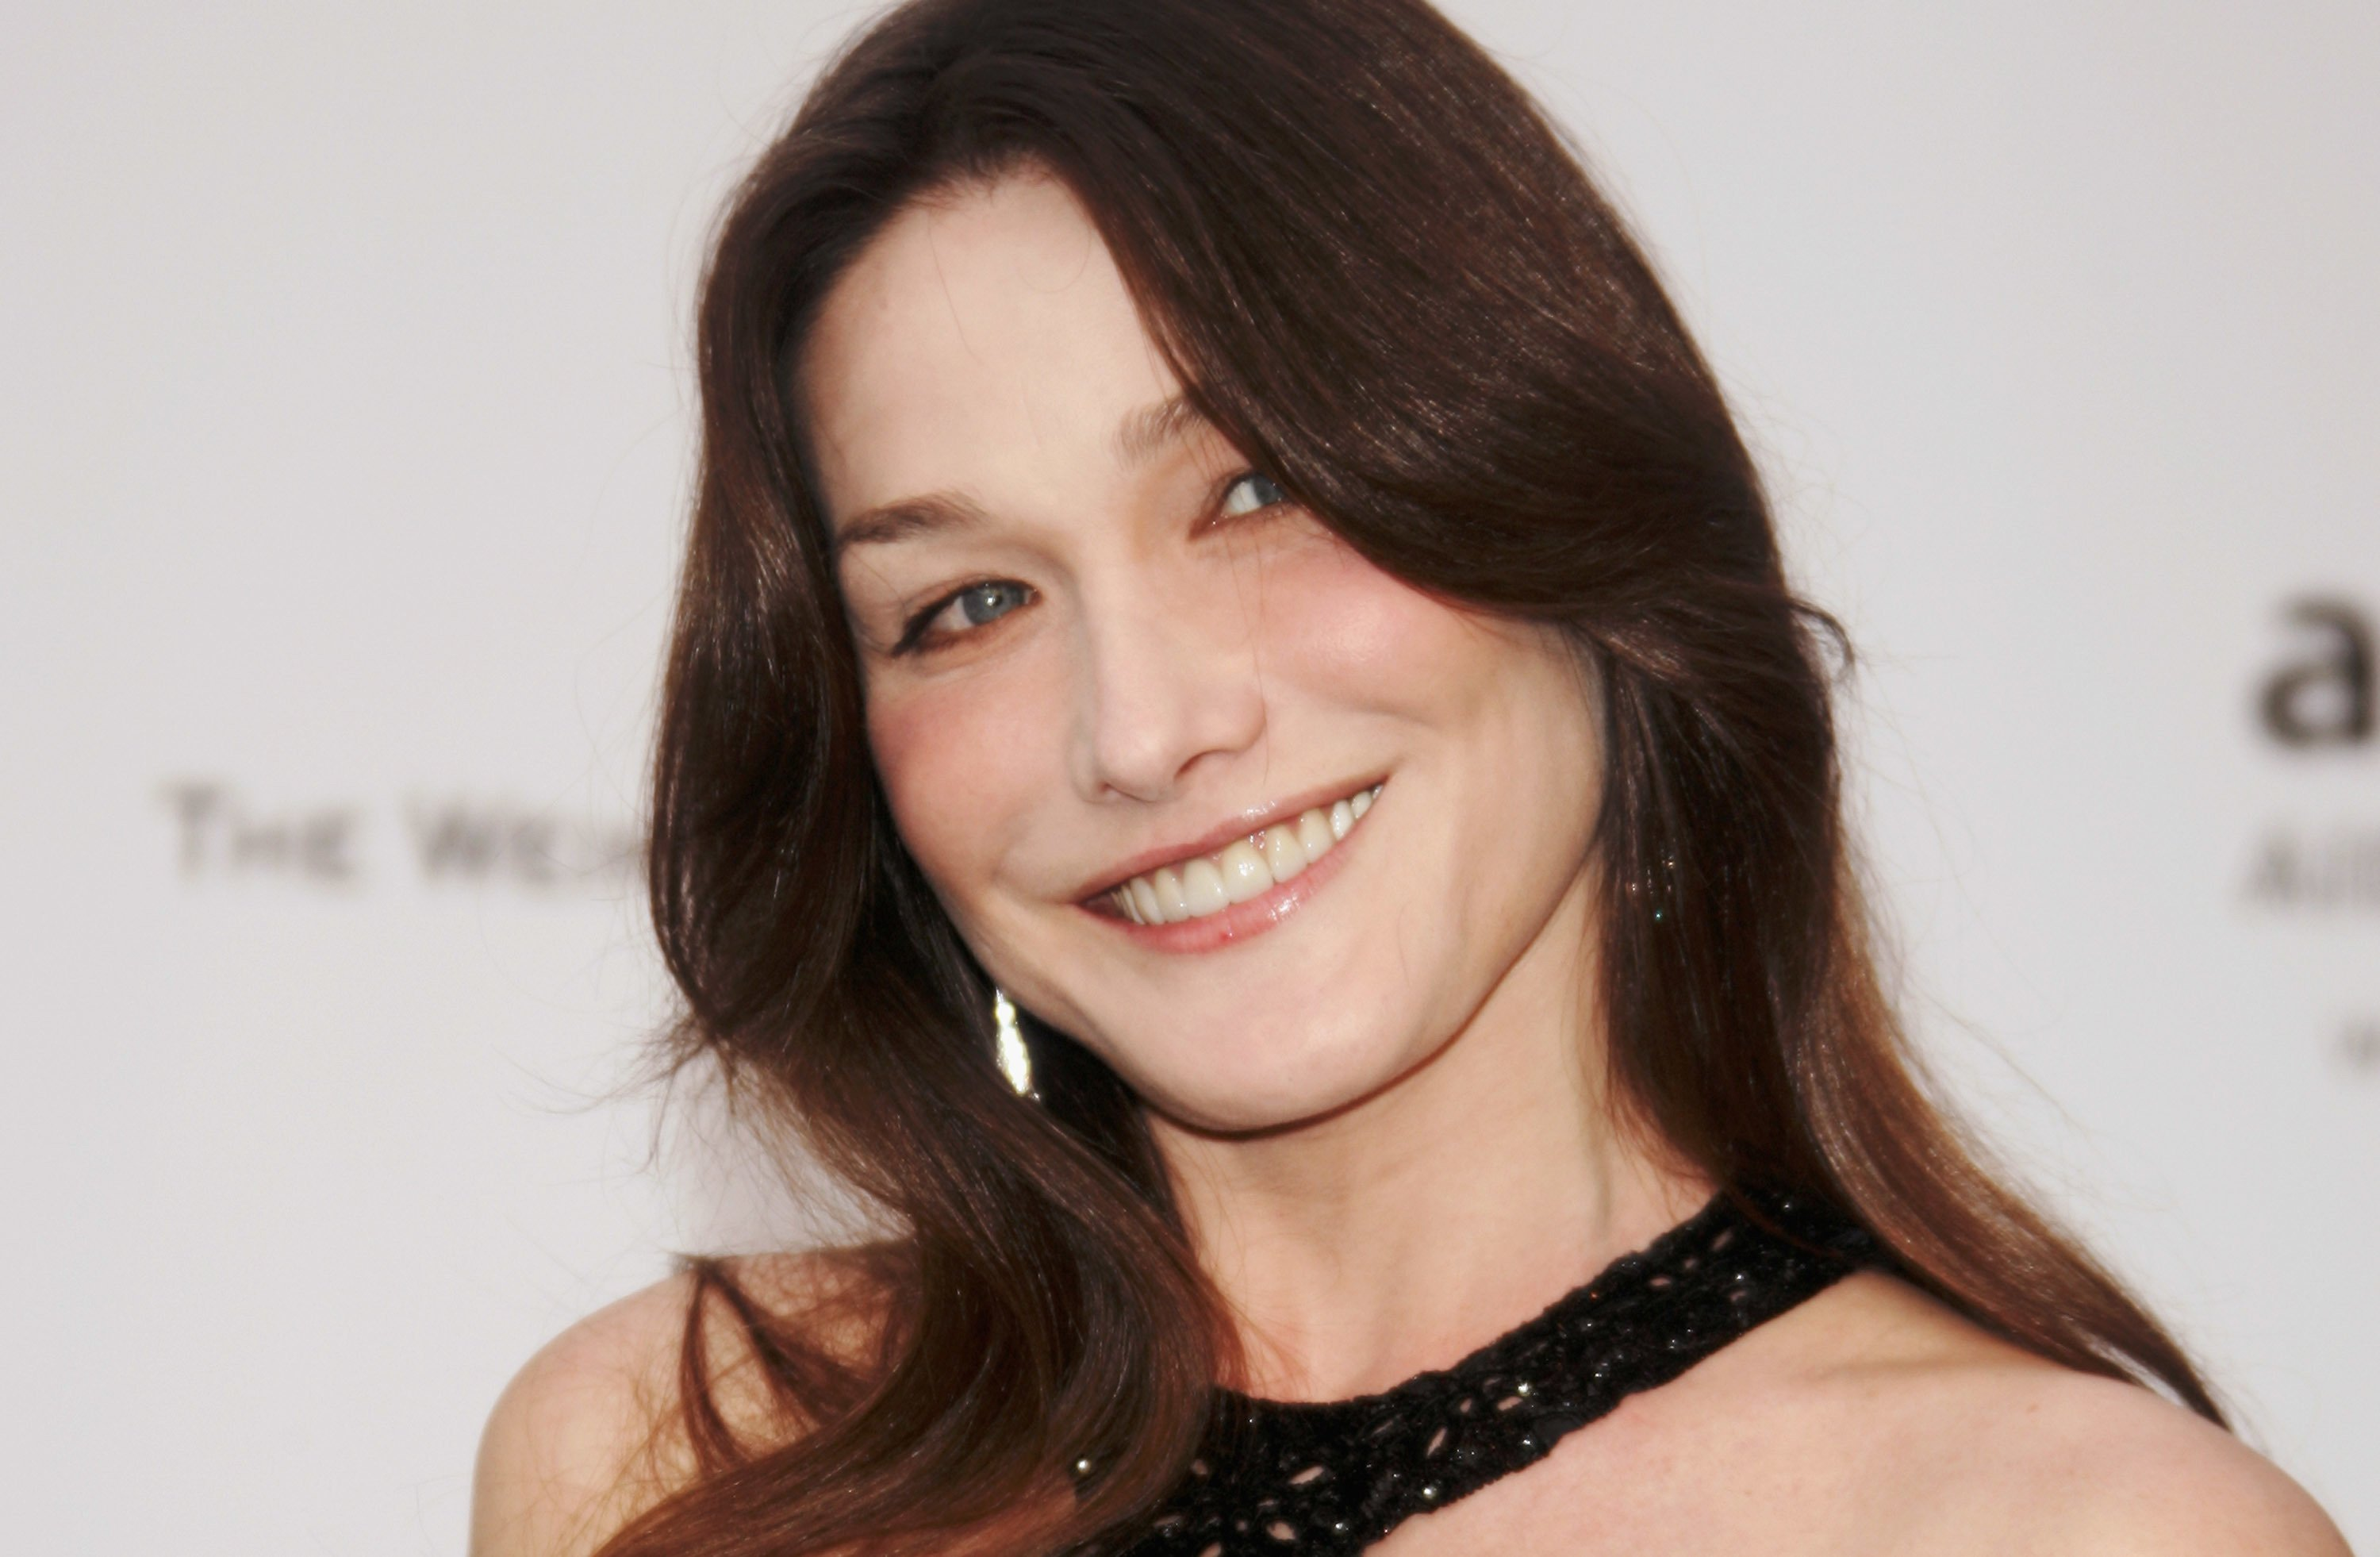 Carla Bruni arrive au Cinéma contre le sida 2007 au profit de l'amfAR au Moulin de Mougins à Cannes, France. | Photo : Getty Images